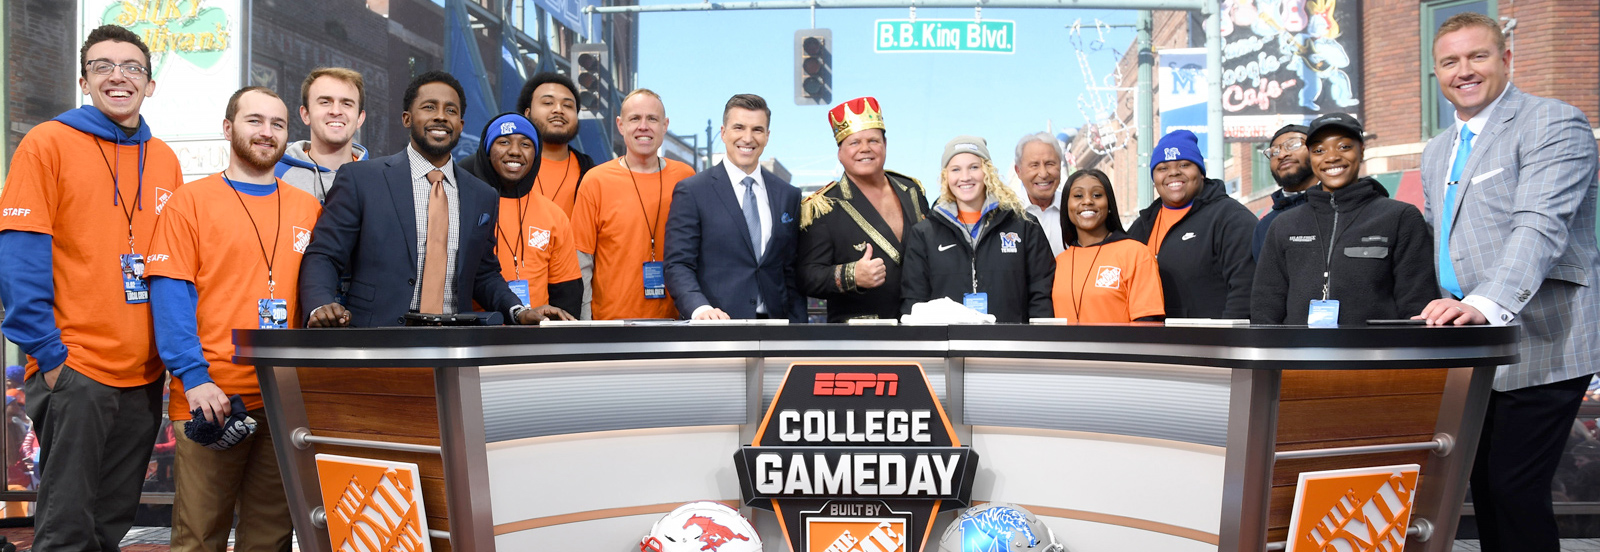 sport & leisure students at ESPN College Gameday